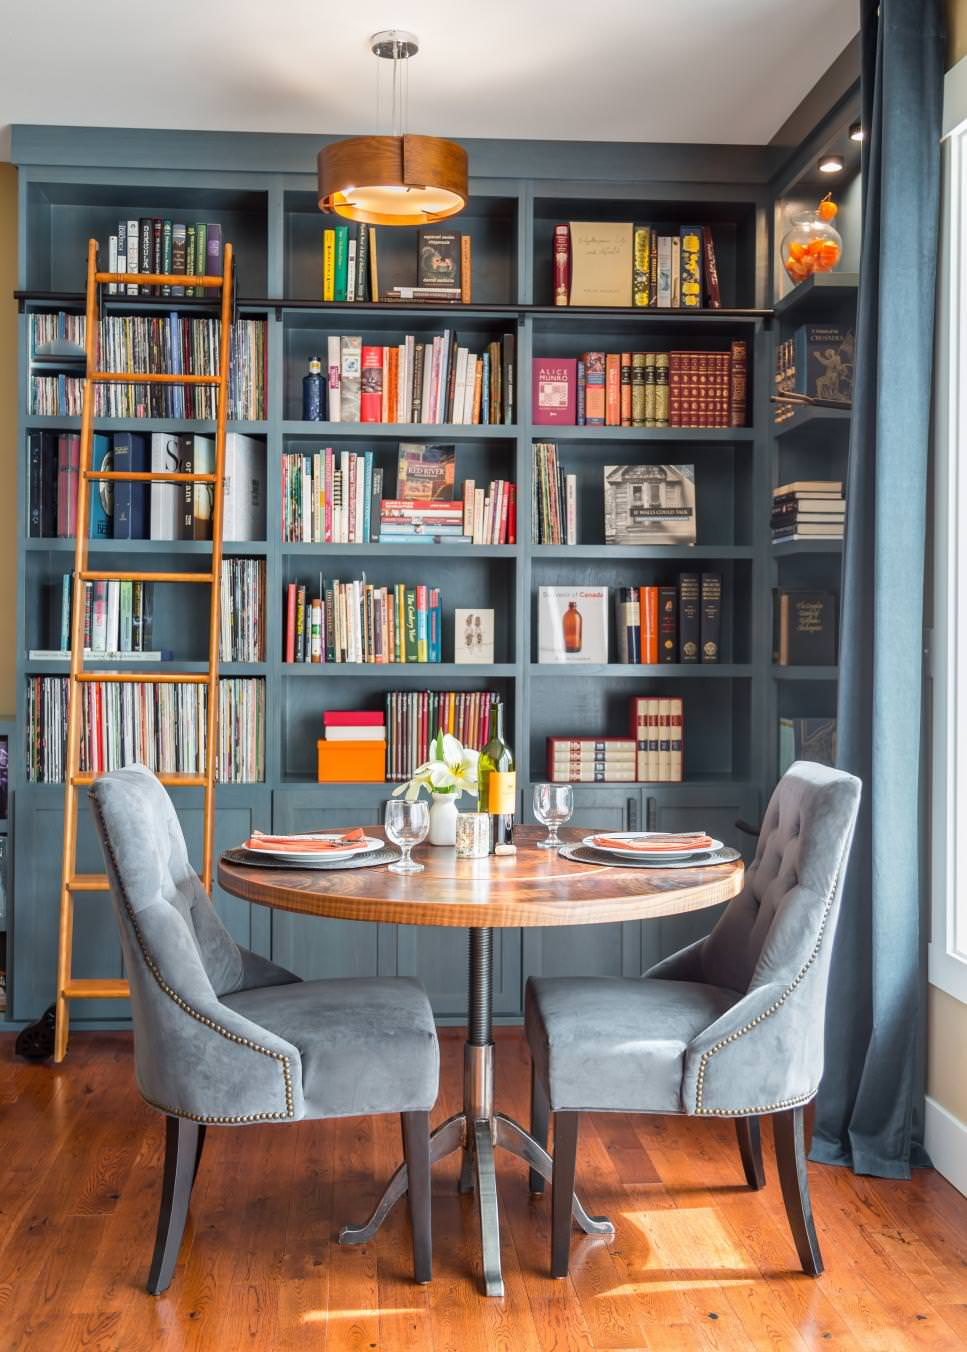 Home Library Design: 23+ Small Dining Table Designs, Decorating Ideas